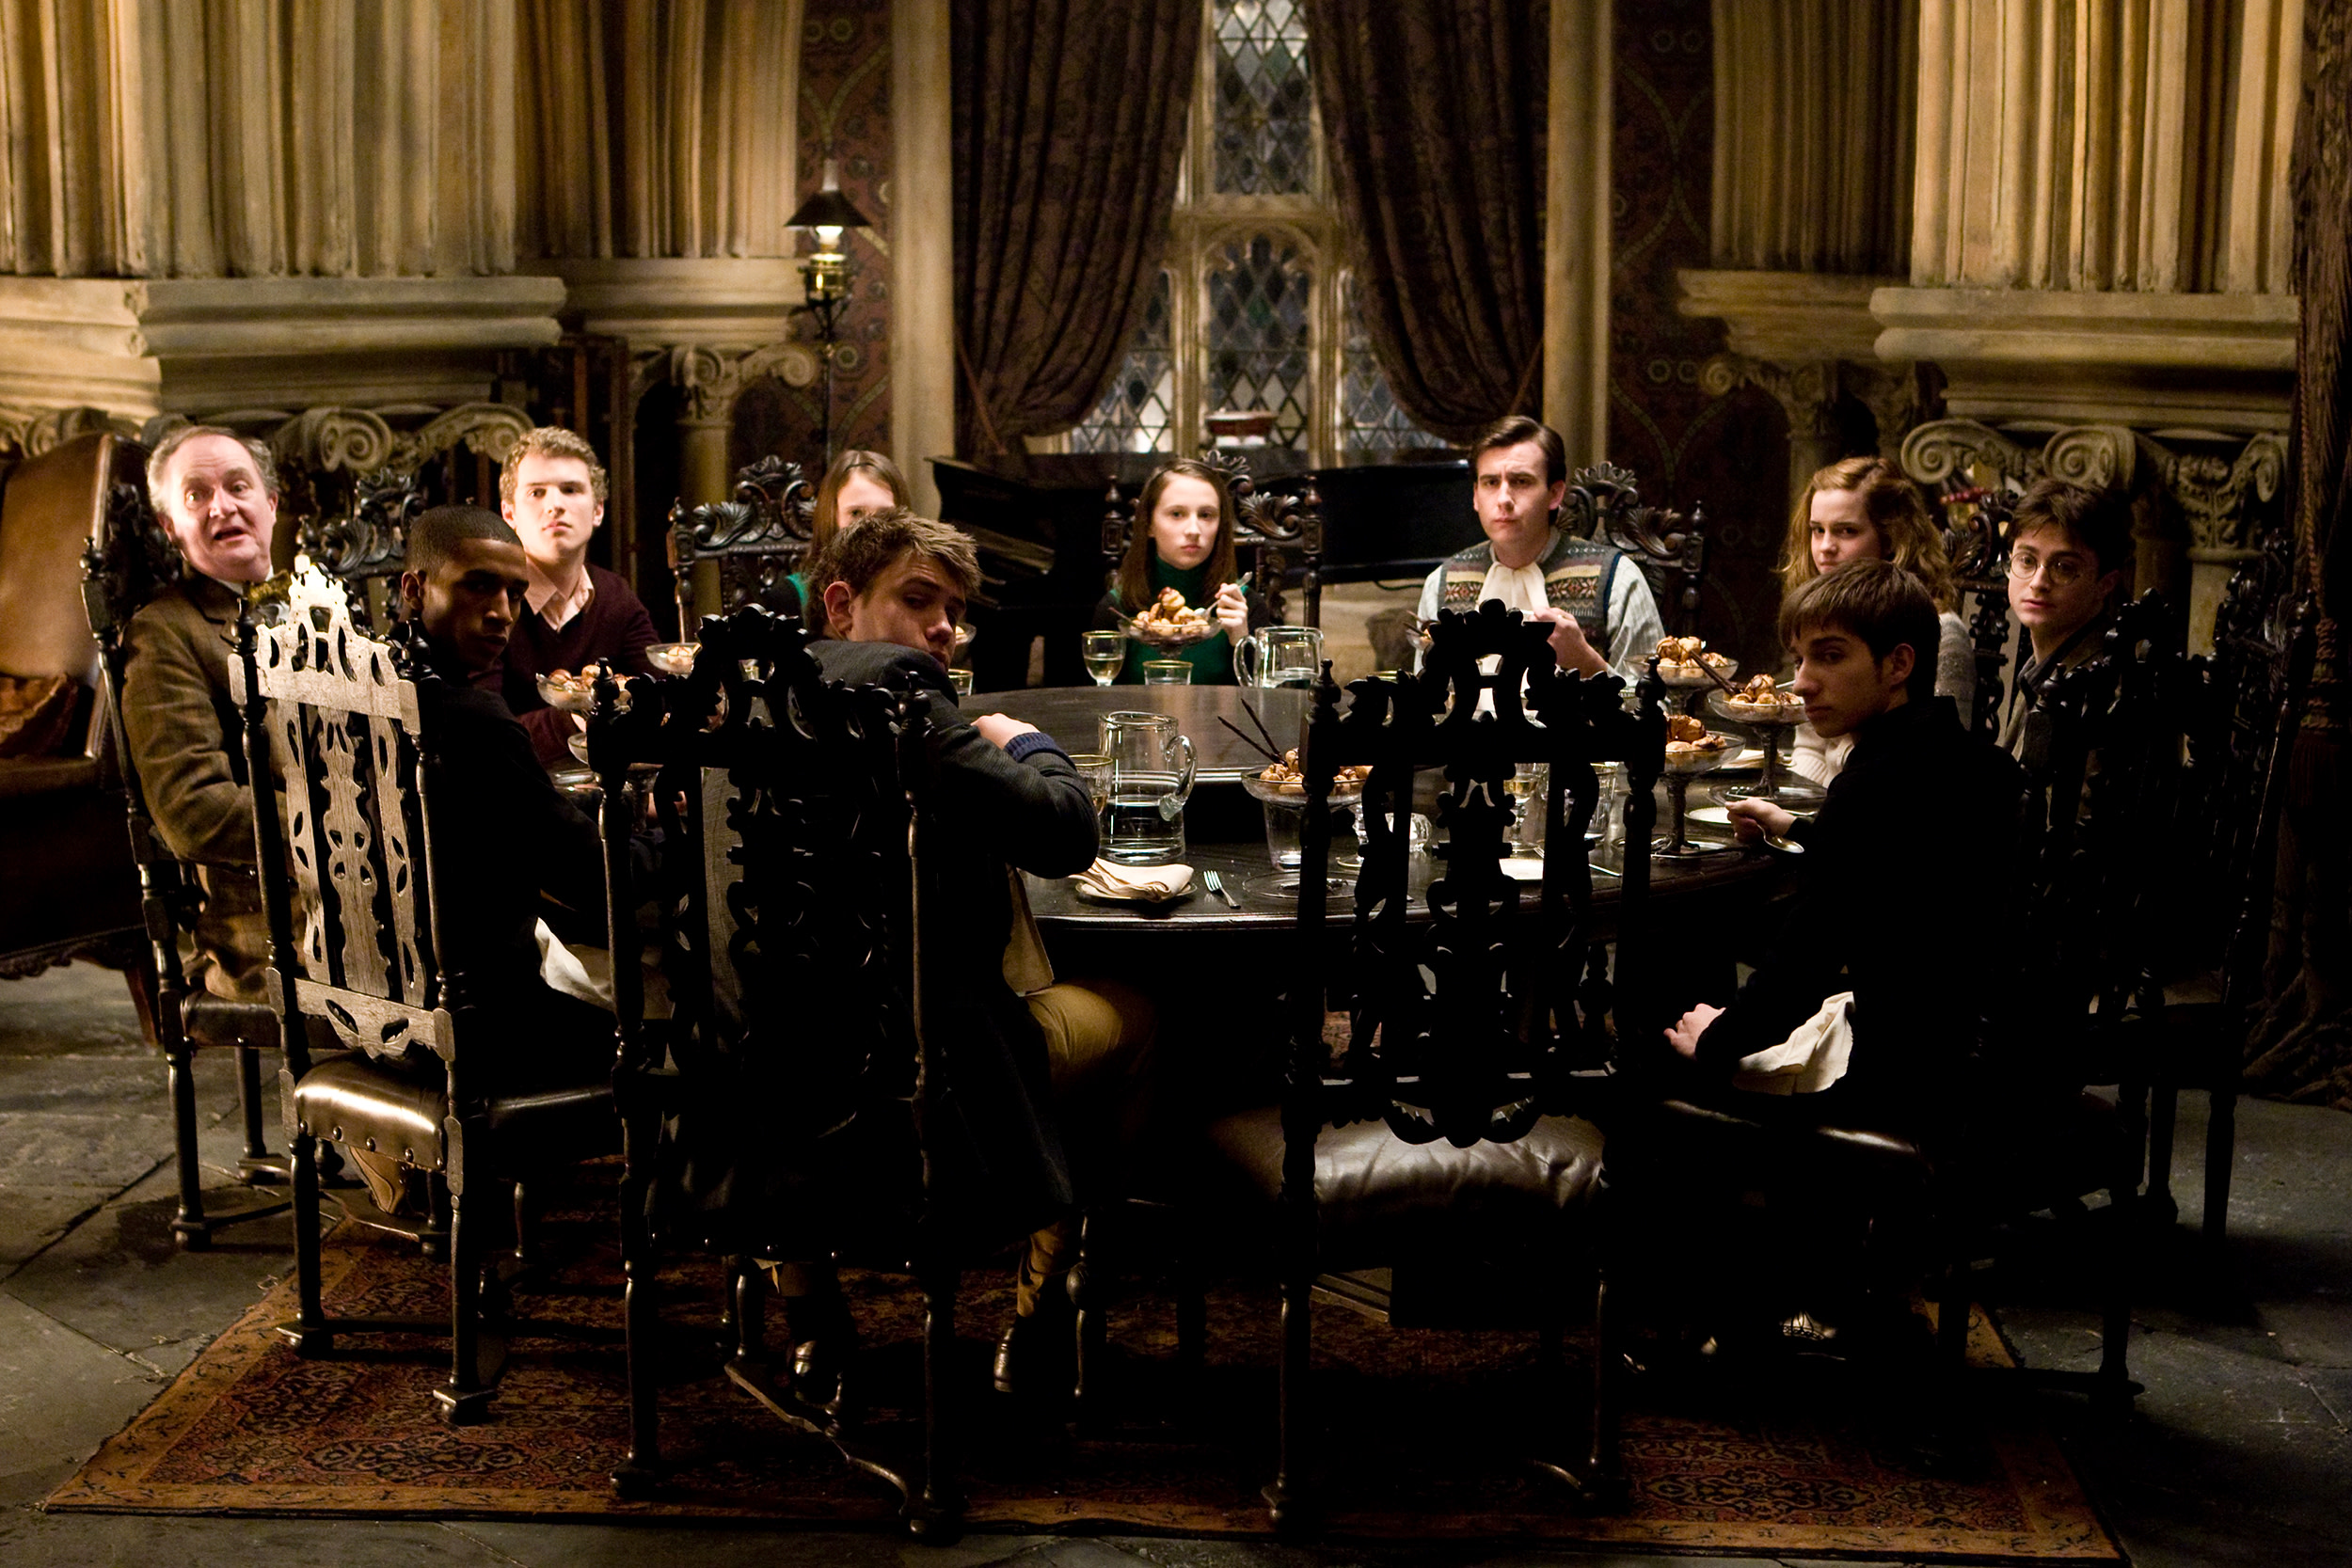 WB-HP-F6-half-blood-prince-slug-club-dinner